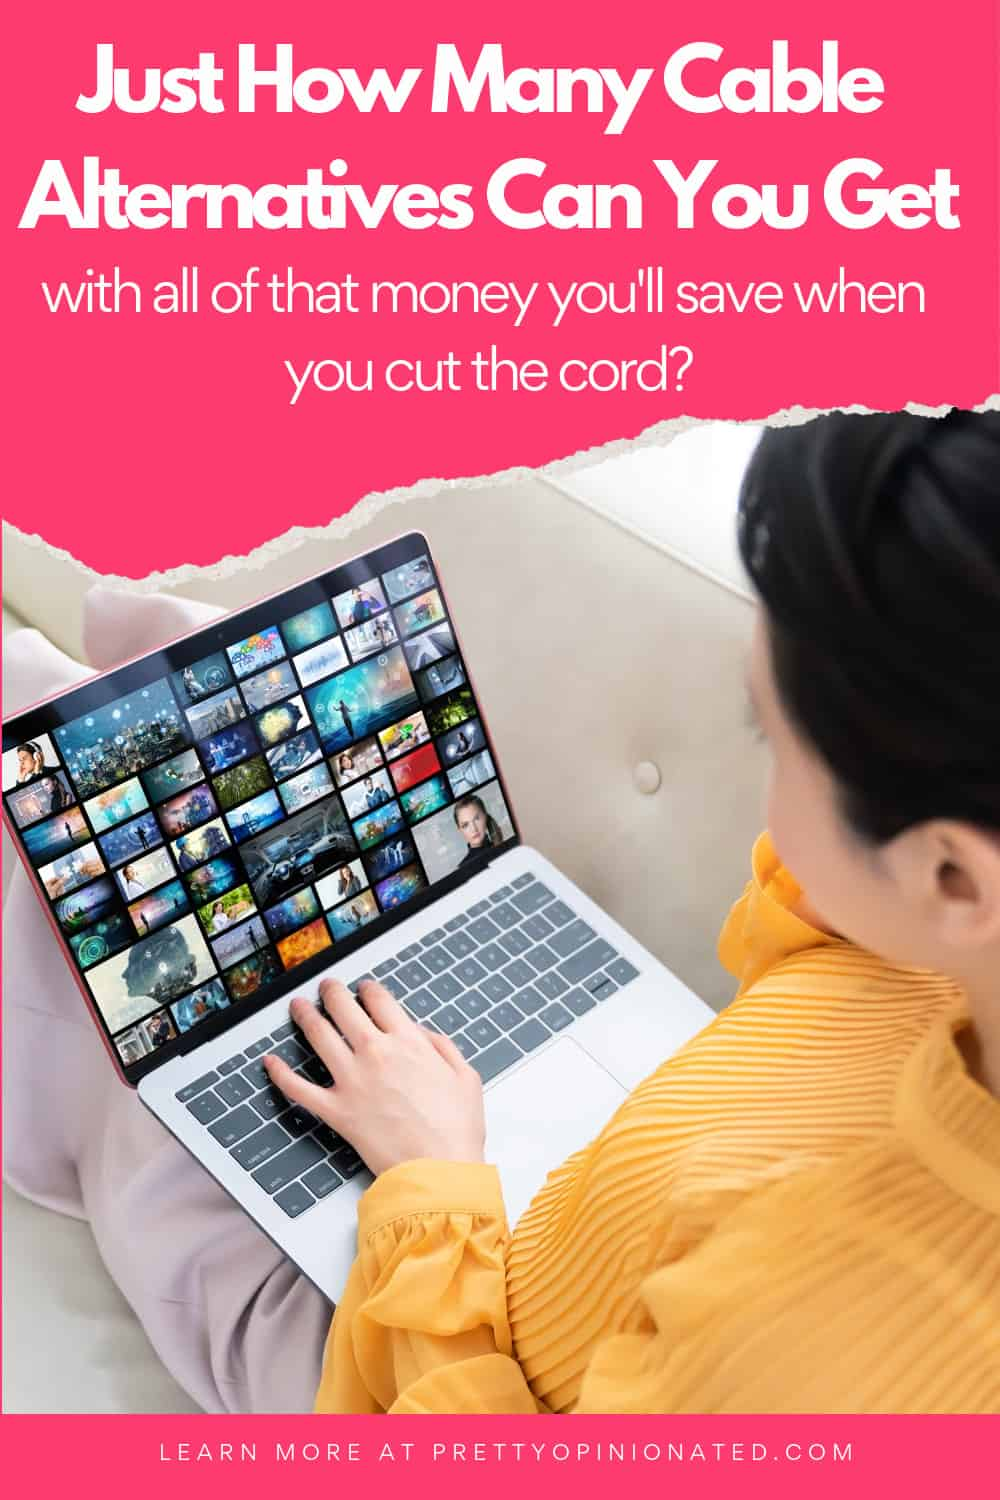 My cable company raised my bill by $100 a month, so I'm cutting the cord. See how many cable alternatives you can get with all the money you'll save!